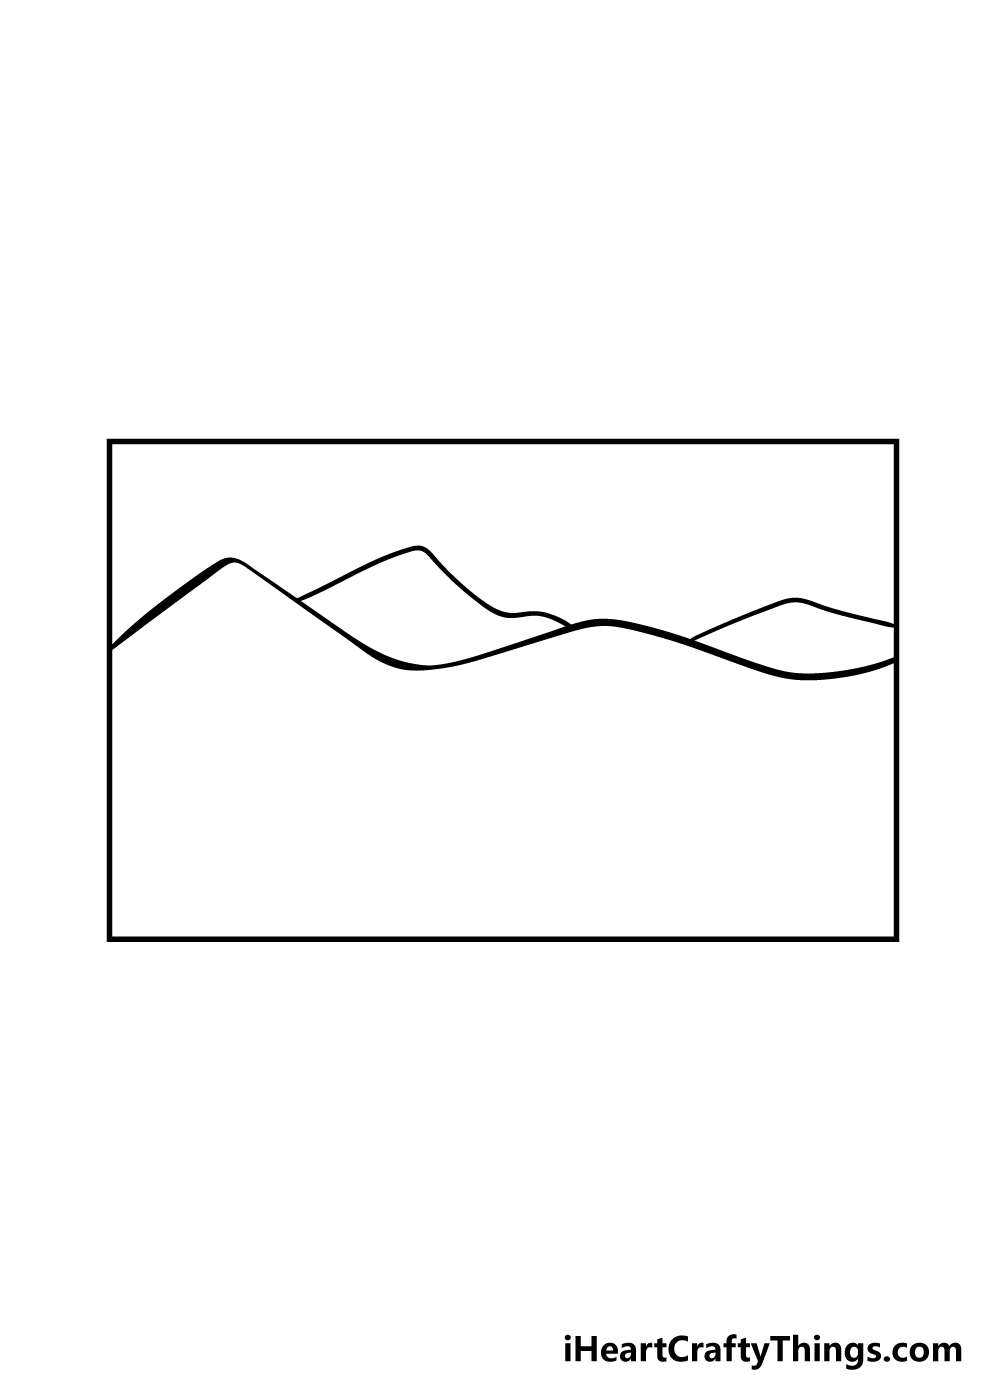 mountain drawing step 2